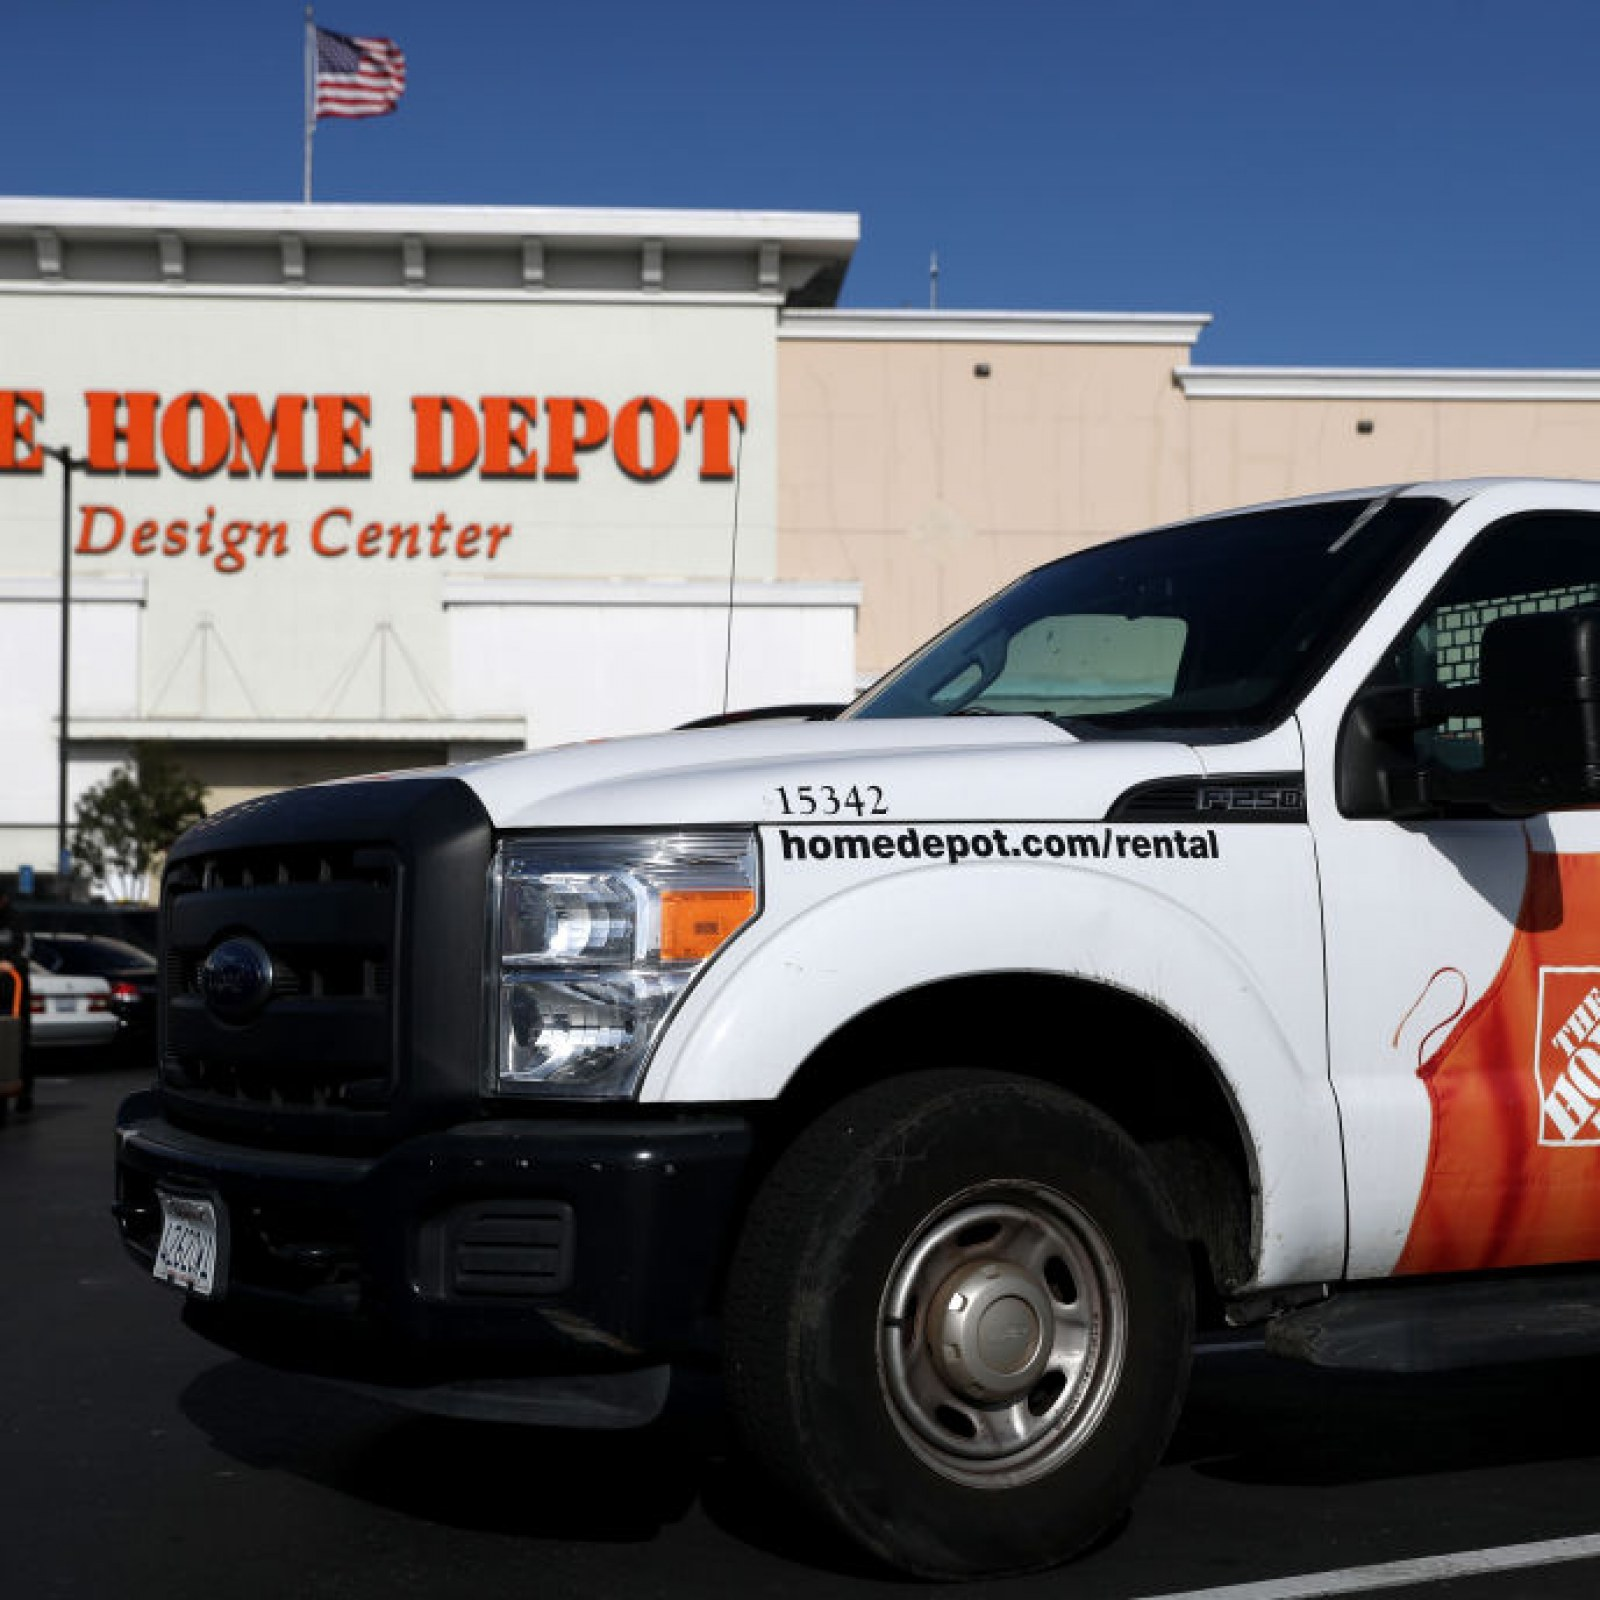 Woman Receives Profane Note From Home Depot Delivery Driver